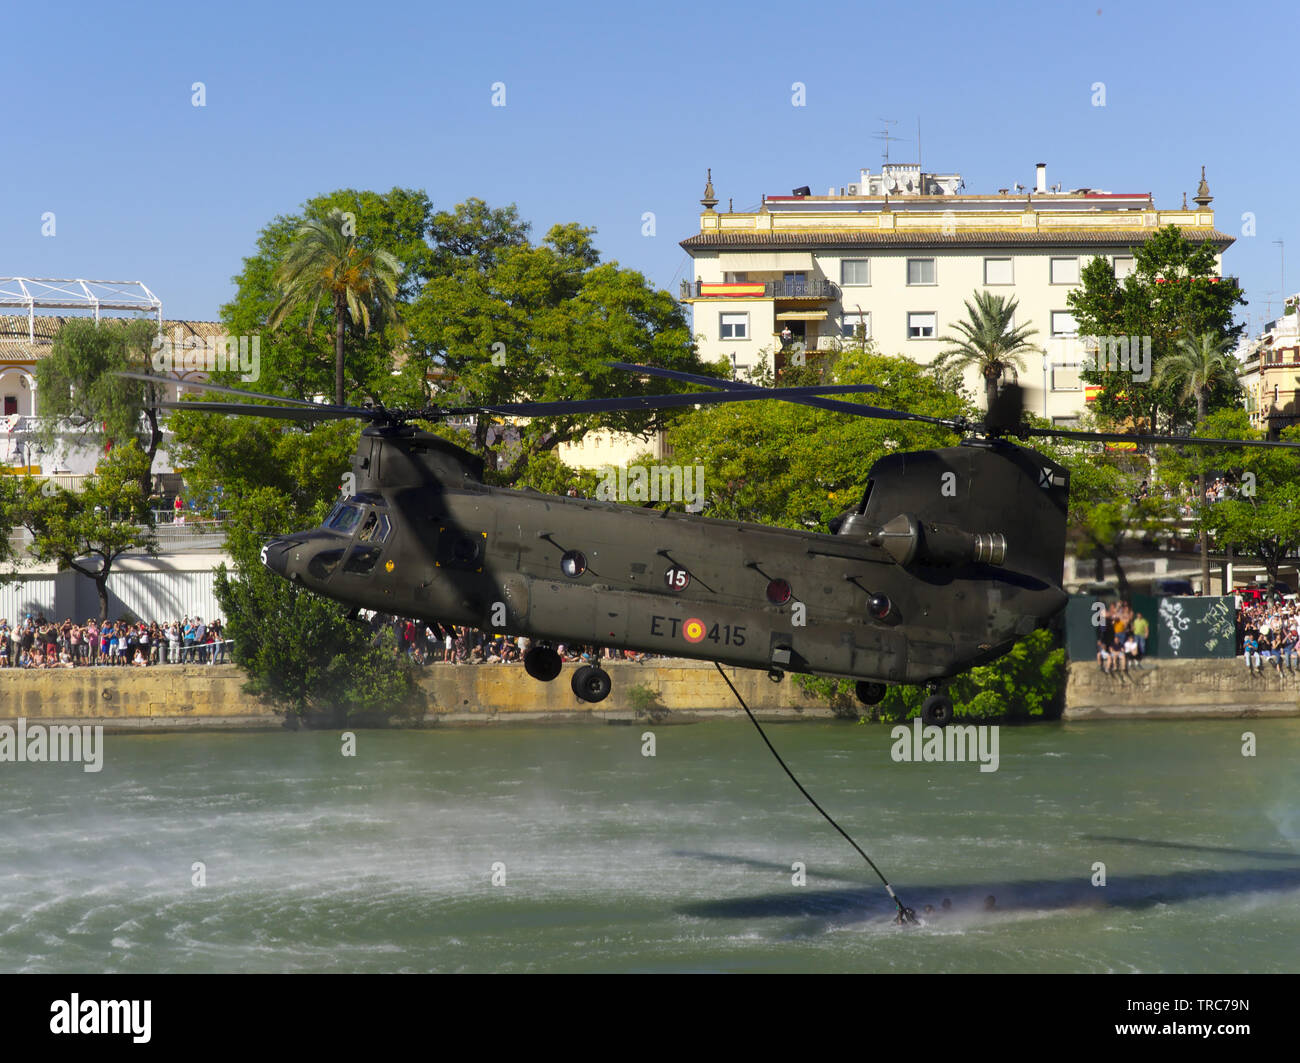 Seville, Spain; May 31st, 2019: CH47 Chinook helicopter from Spanish Army in military exhibition on the occasion of the day of the armed forces on the - Stock Image